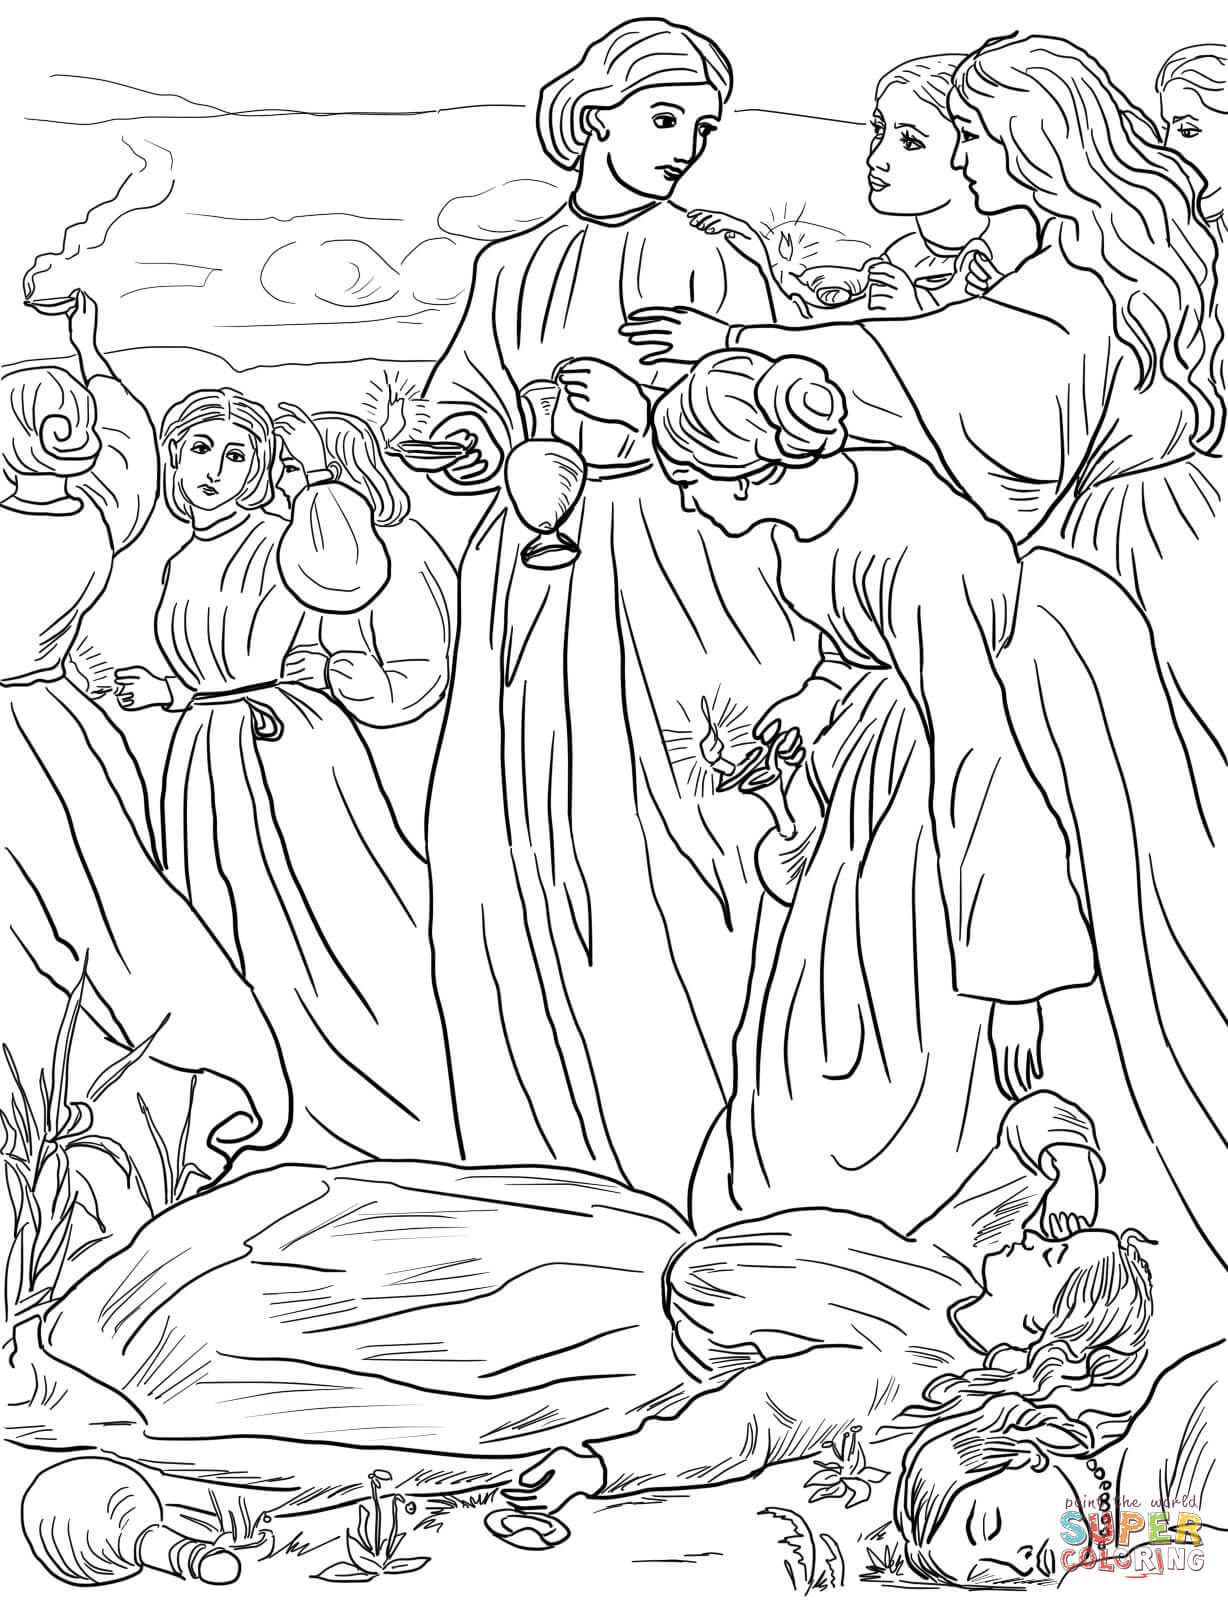 Ten Virgins Parable coloring page.